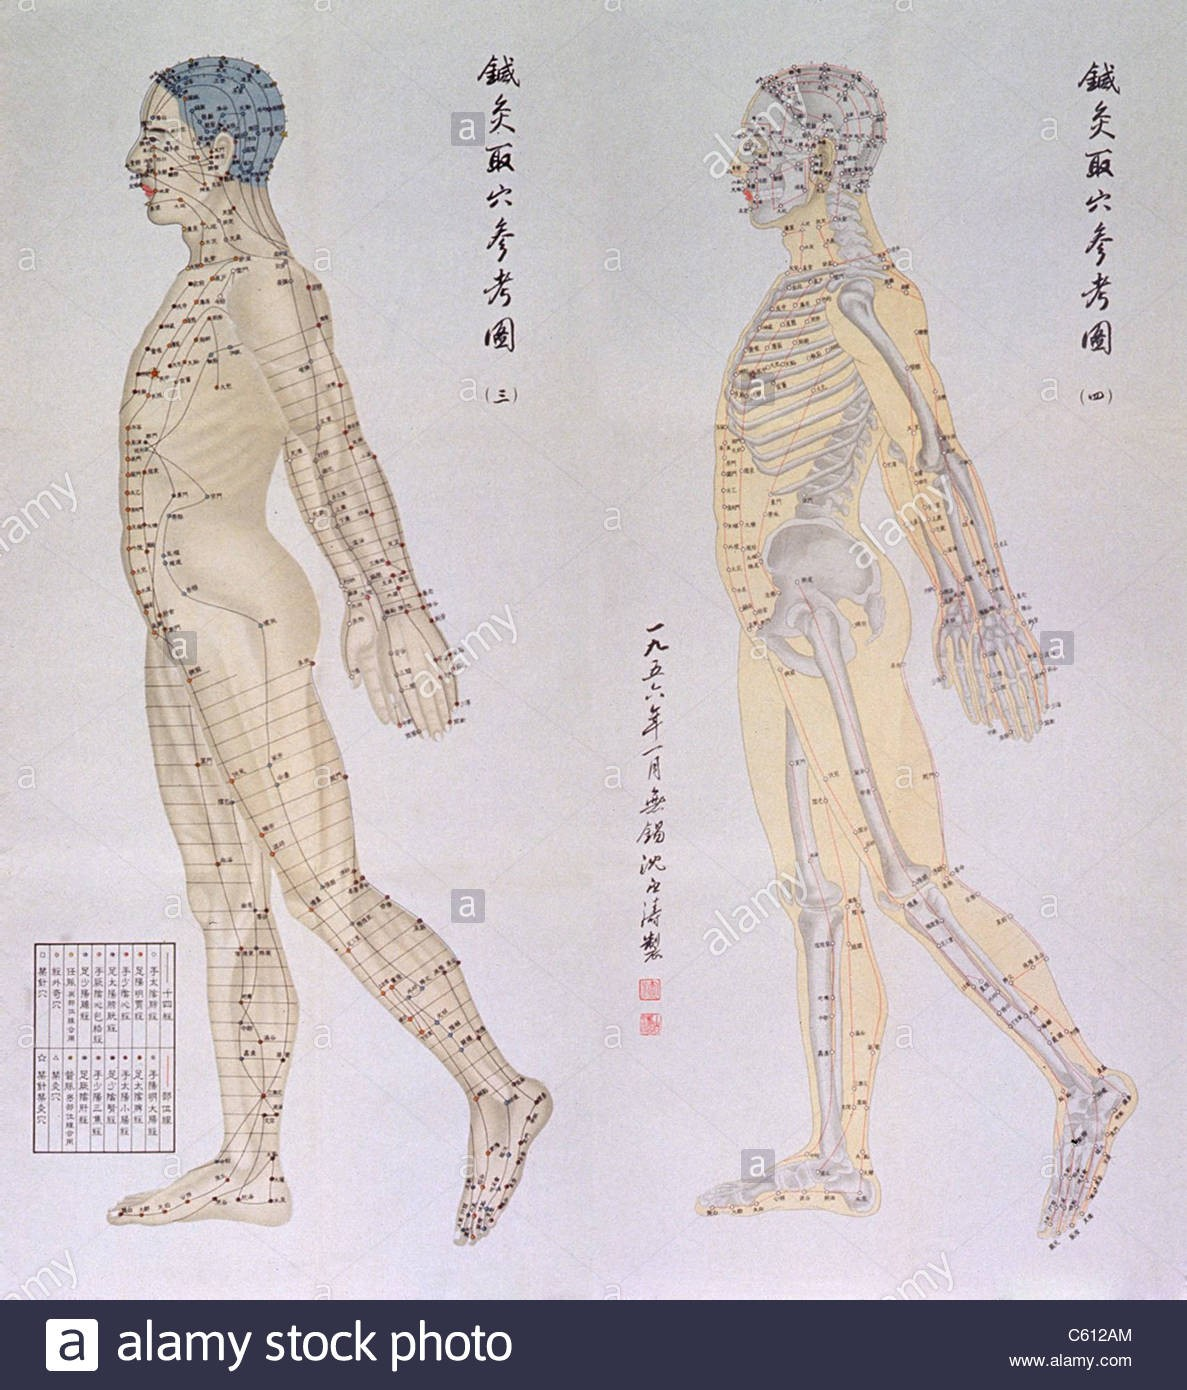 Chinese Traditional Acupuncture Diagram Lateral View